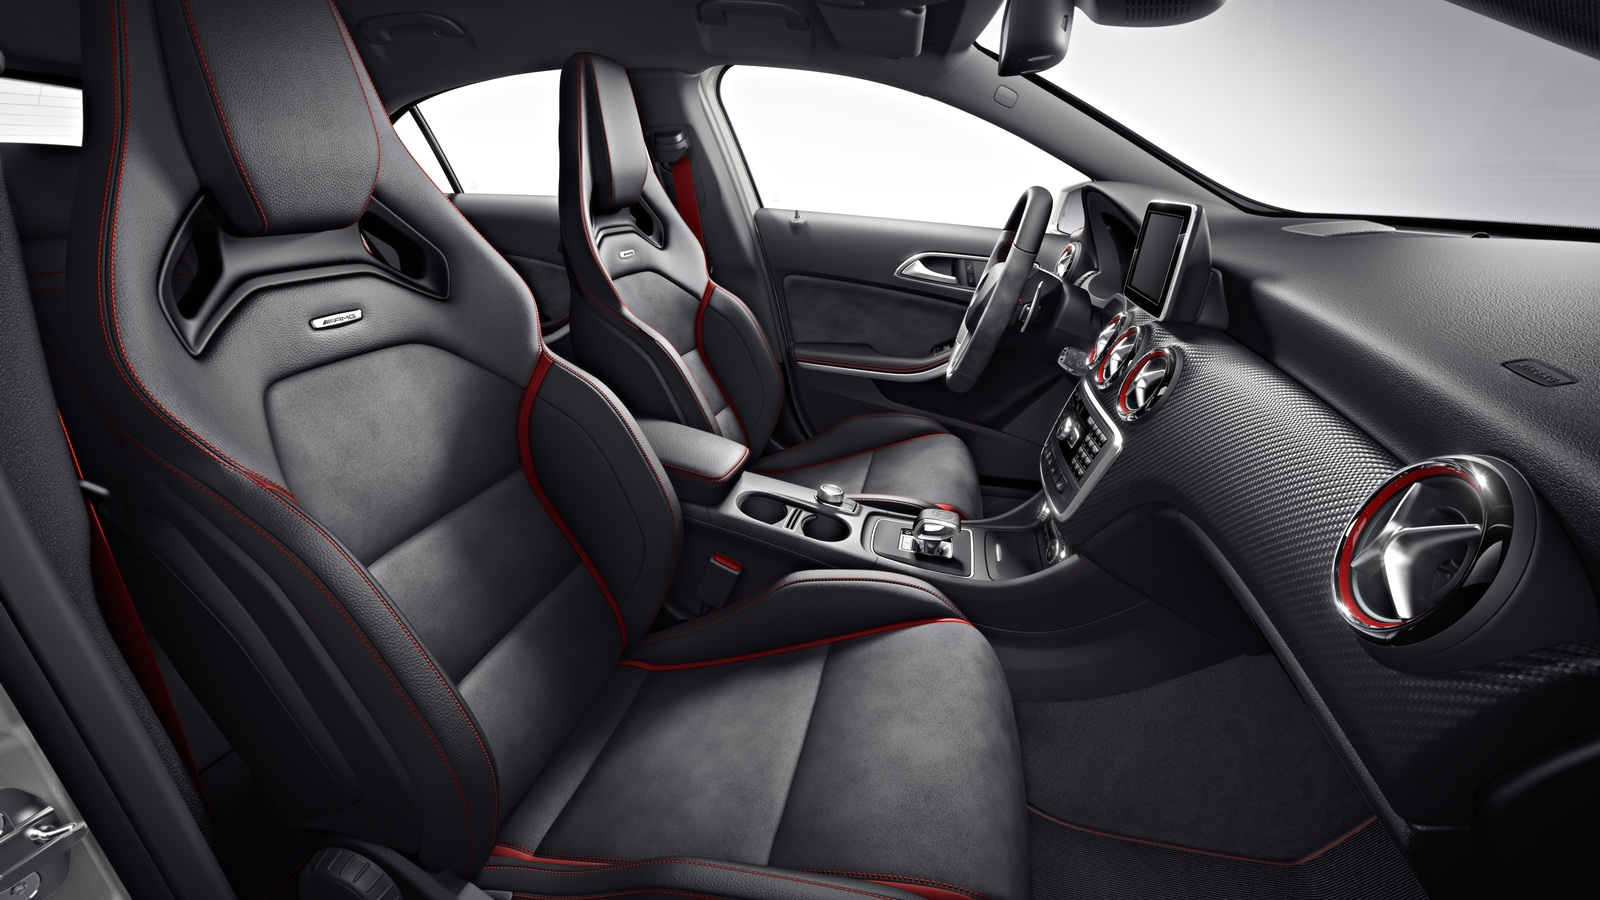 Mercedes A45 AMG Edition 1 Interior